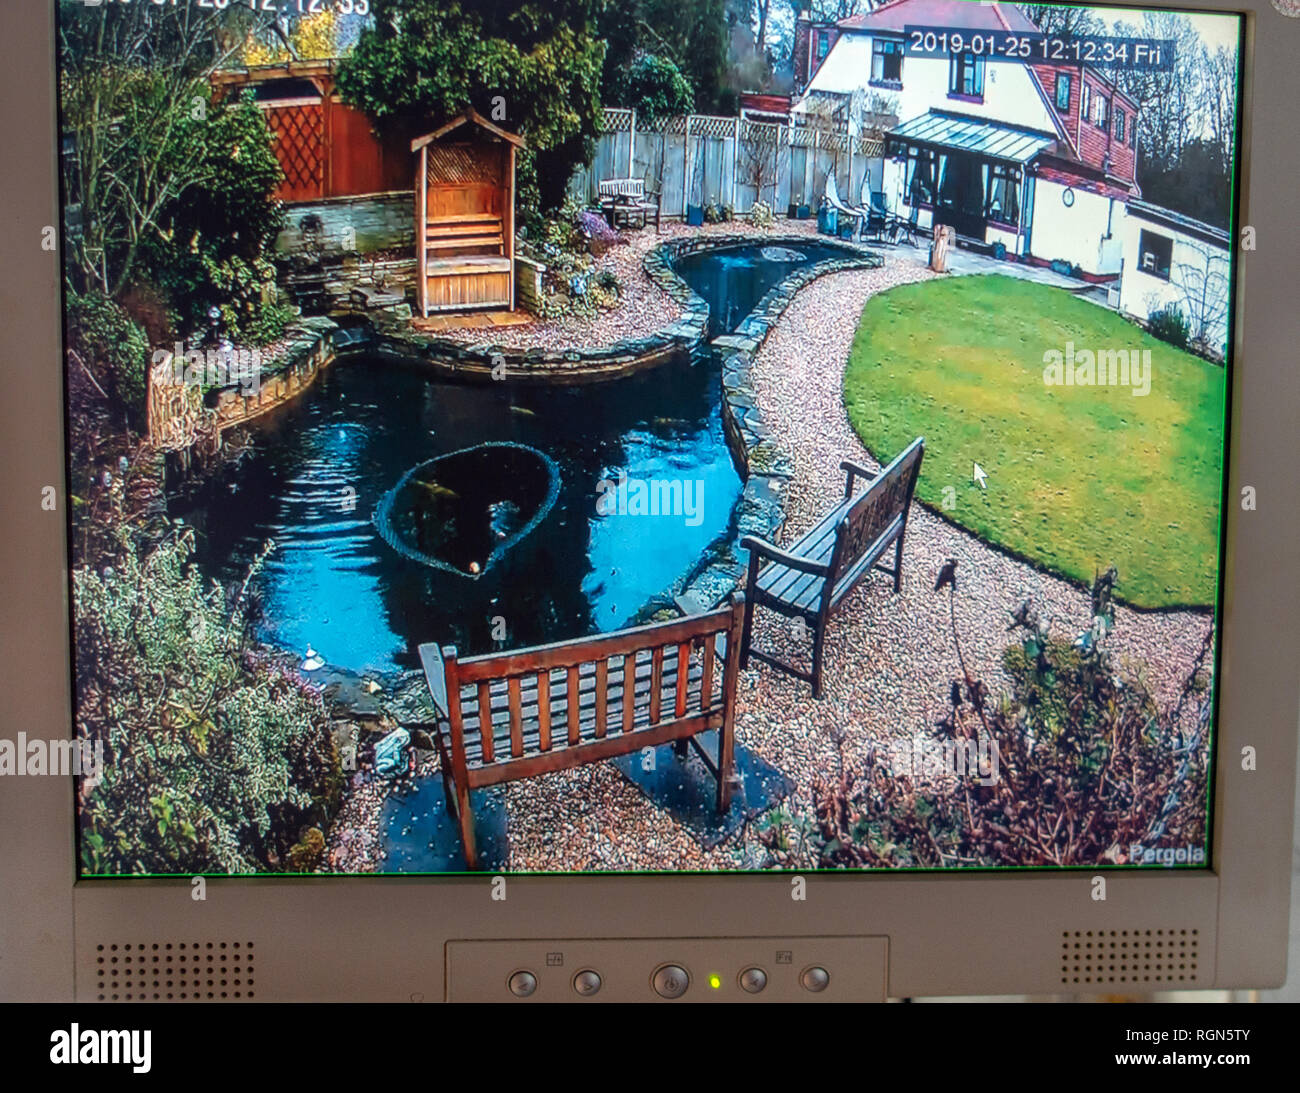 Monitor showing CCTV Camera surveillance from Multiple DVR Locations around a home and gardens at a private home in England - Stock Image